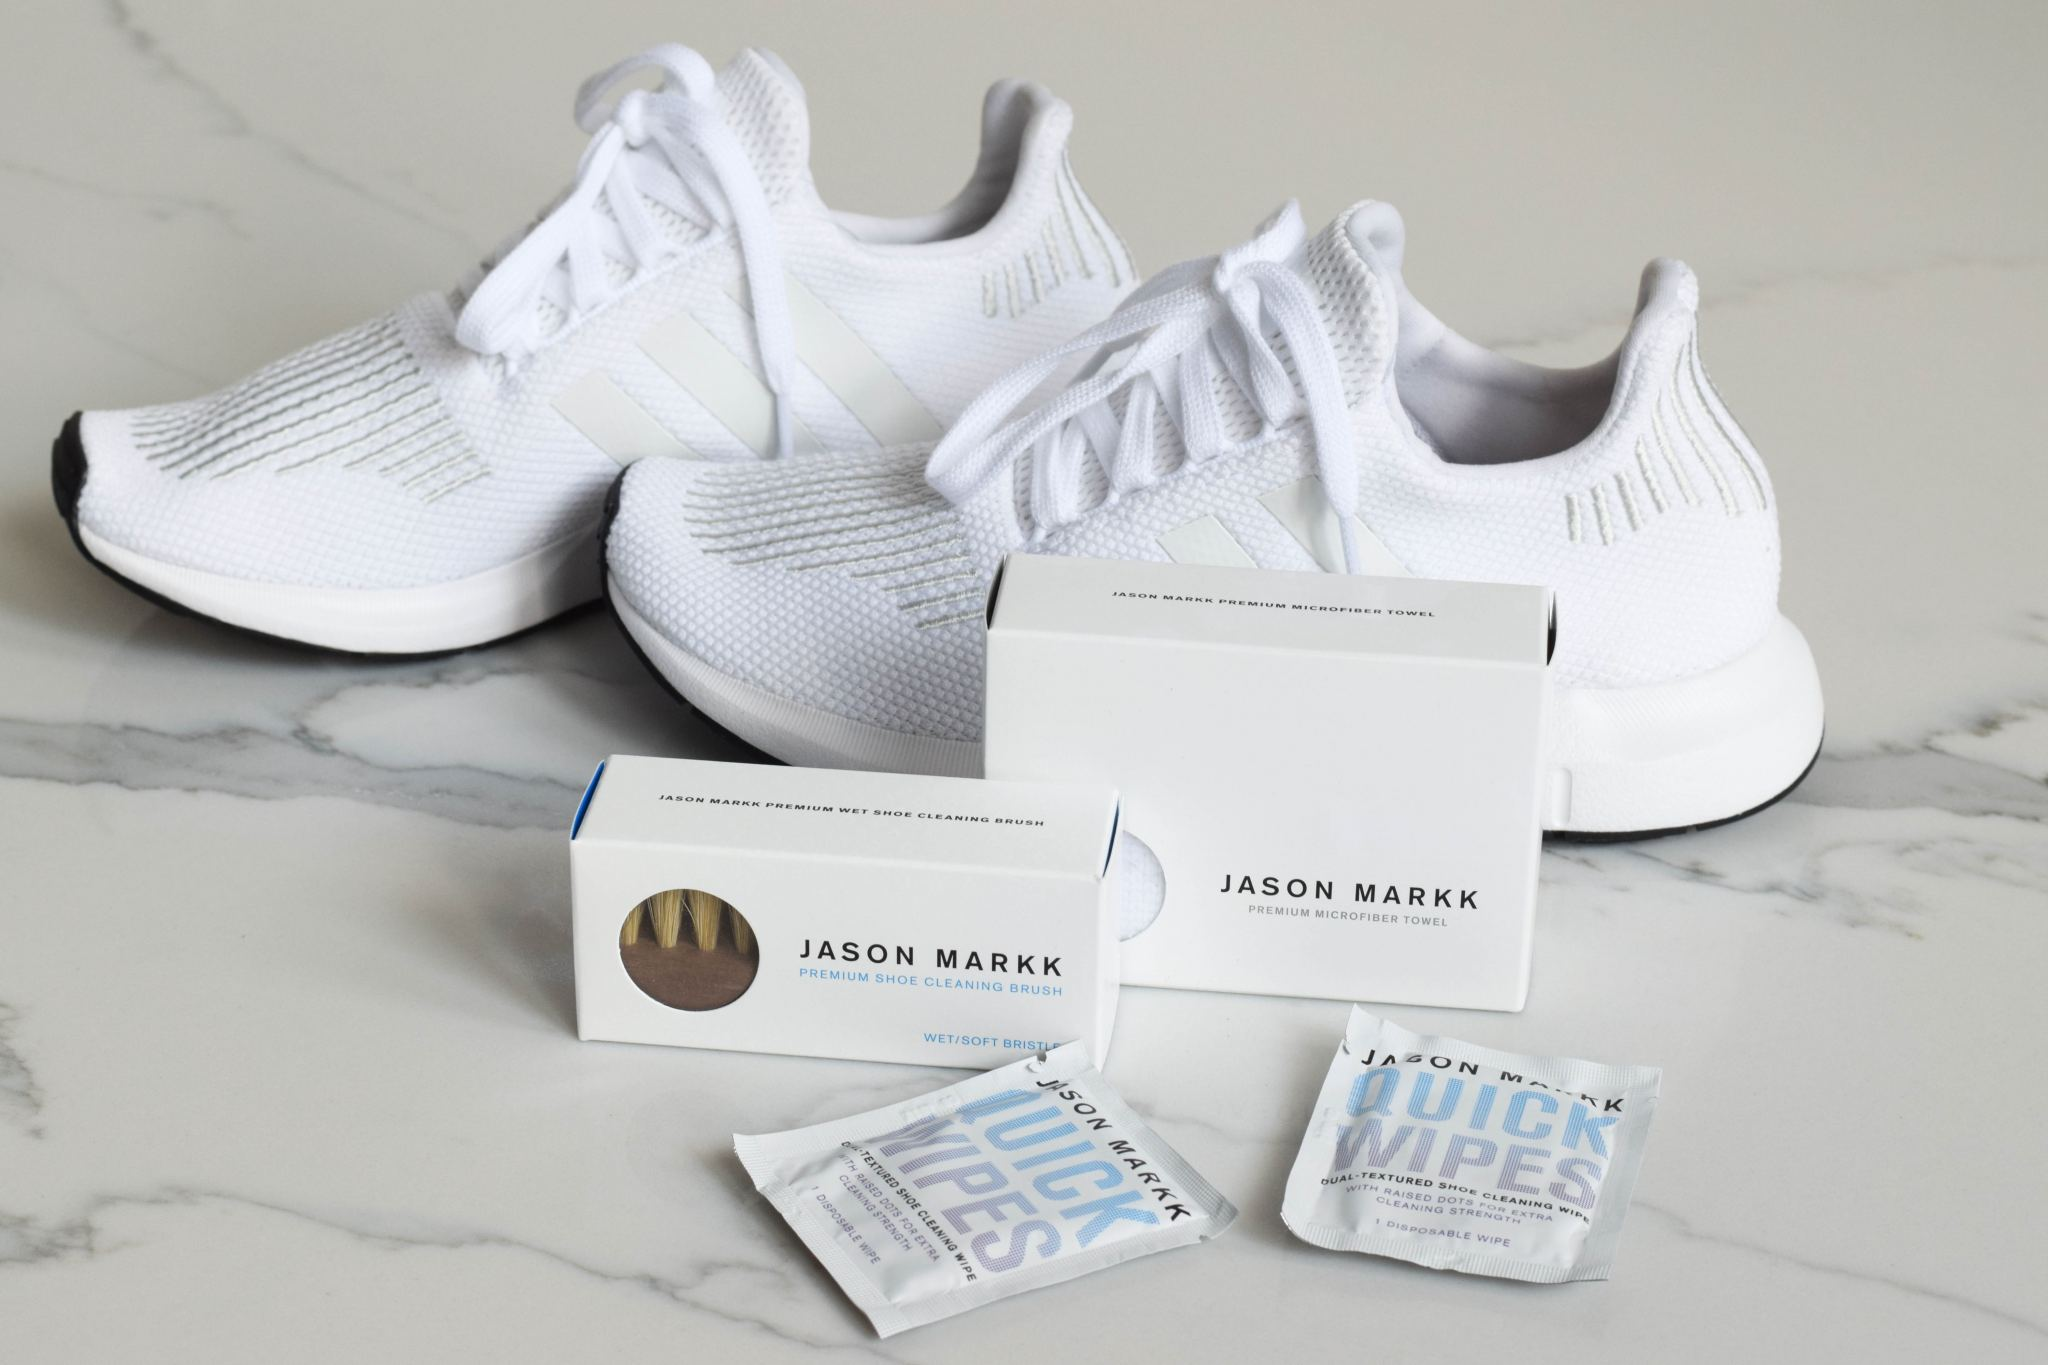 Jason Markk: The Only Shoe Care Product You Need